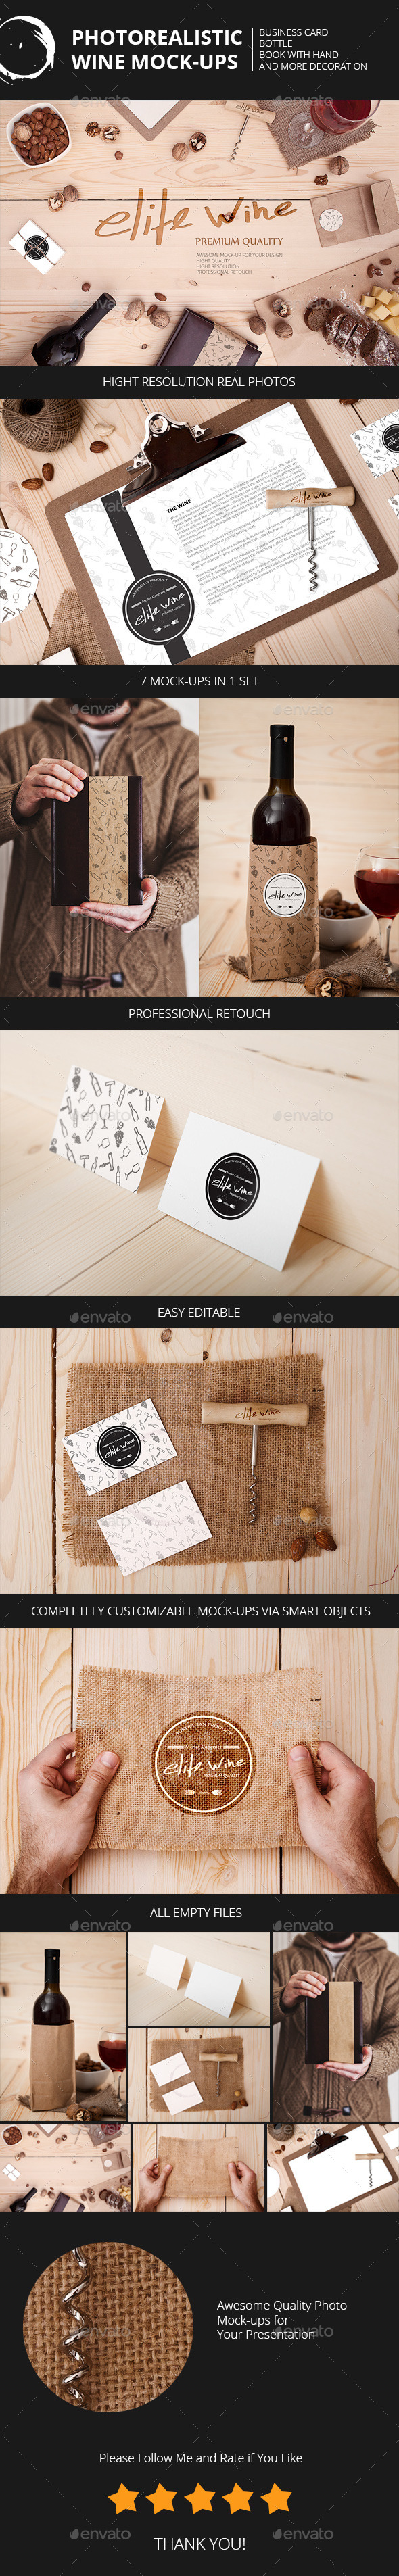 GraphicRiver Wine Themes Mock-Ups 10467459